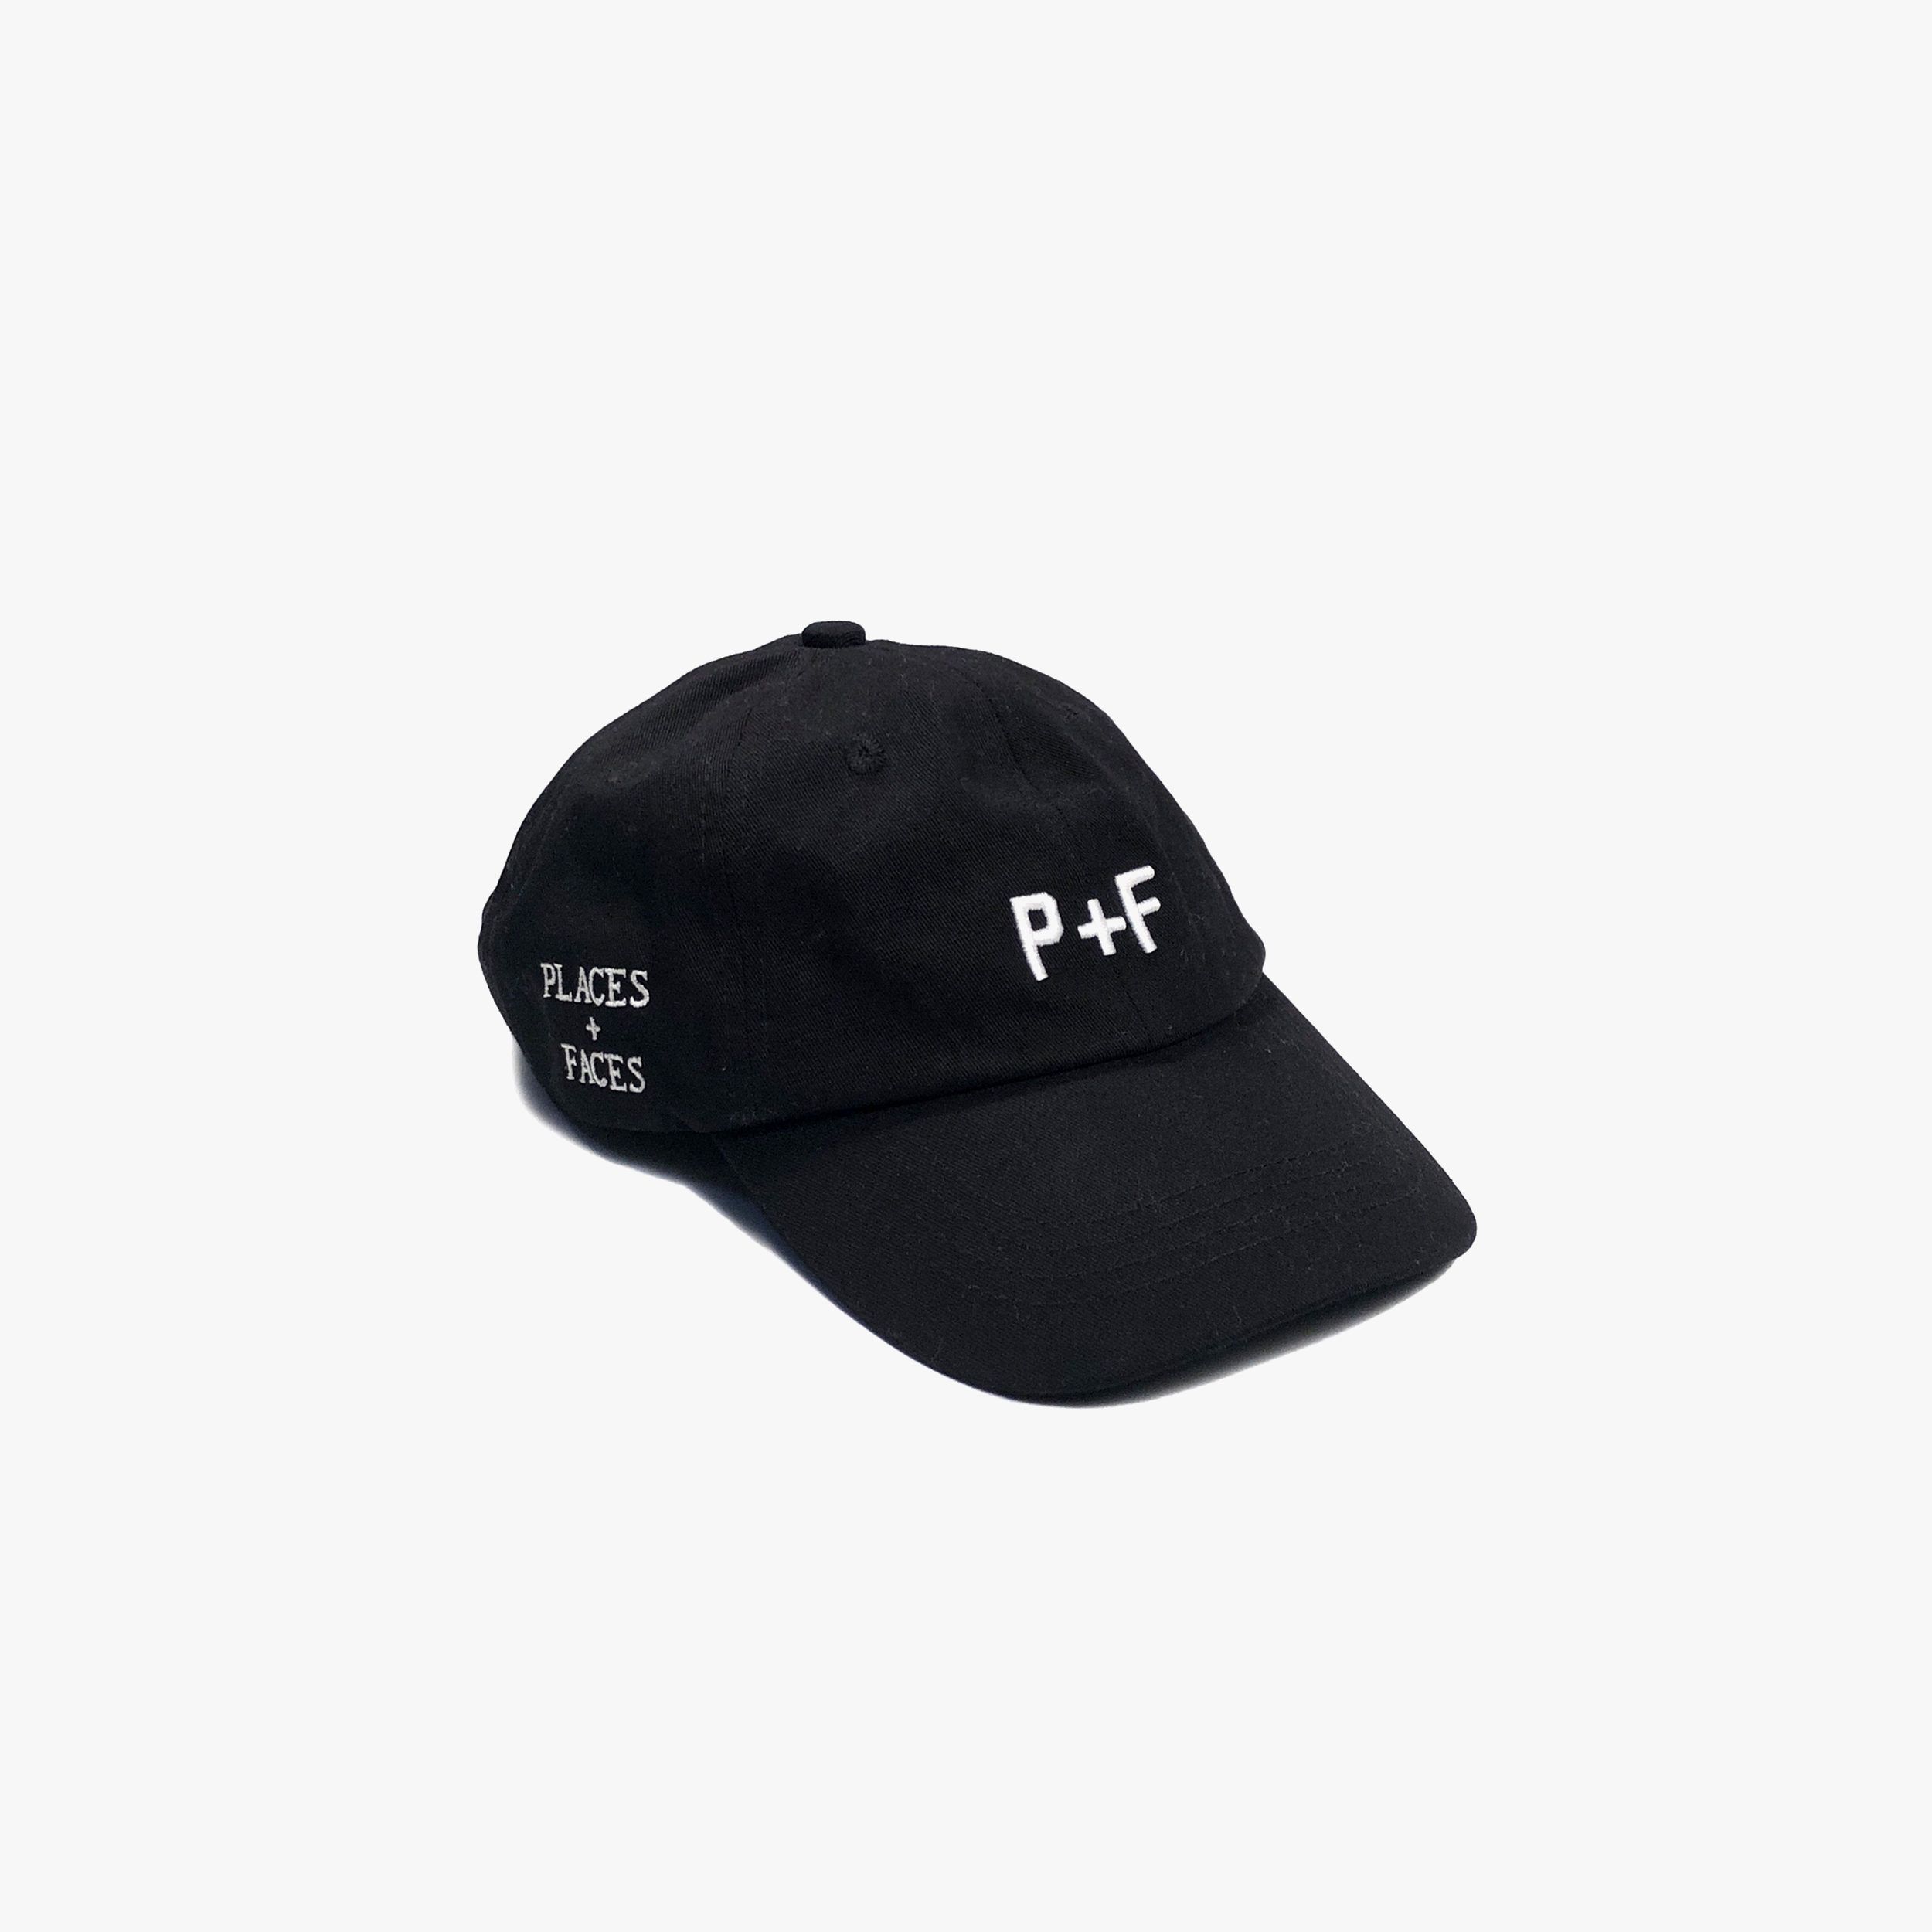 a06103594ee Places + Faces Logo Cap - PlugMePlease